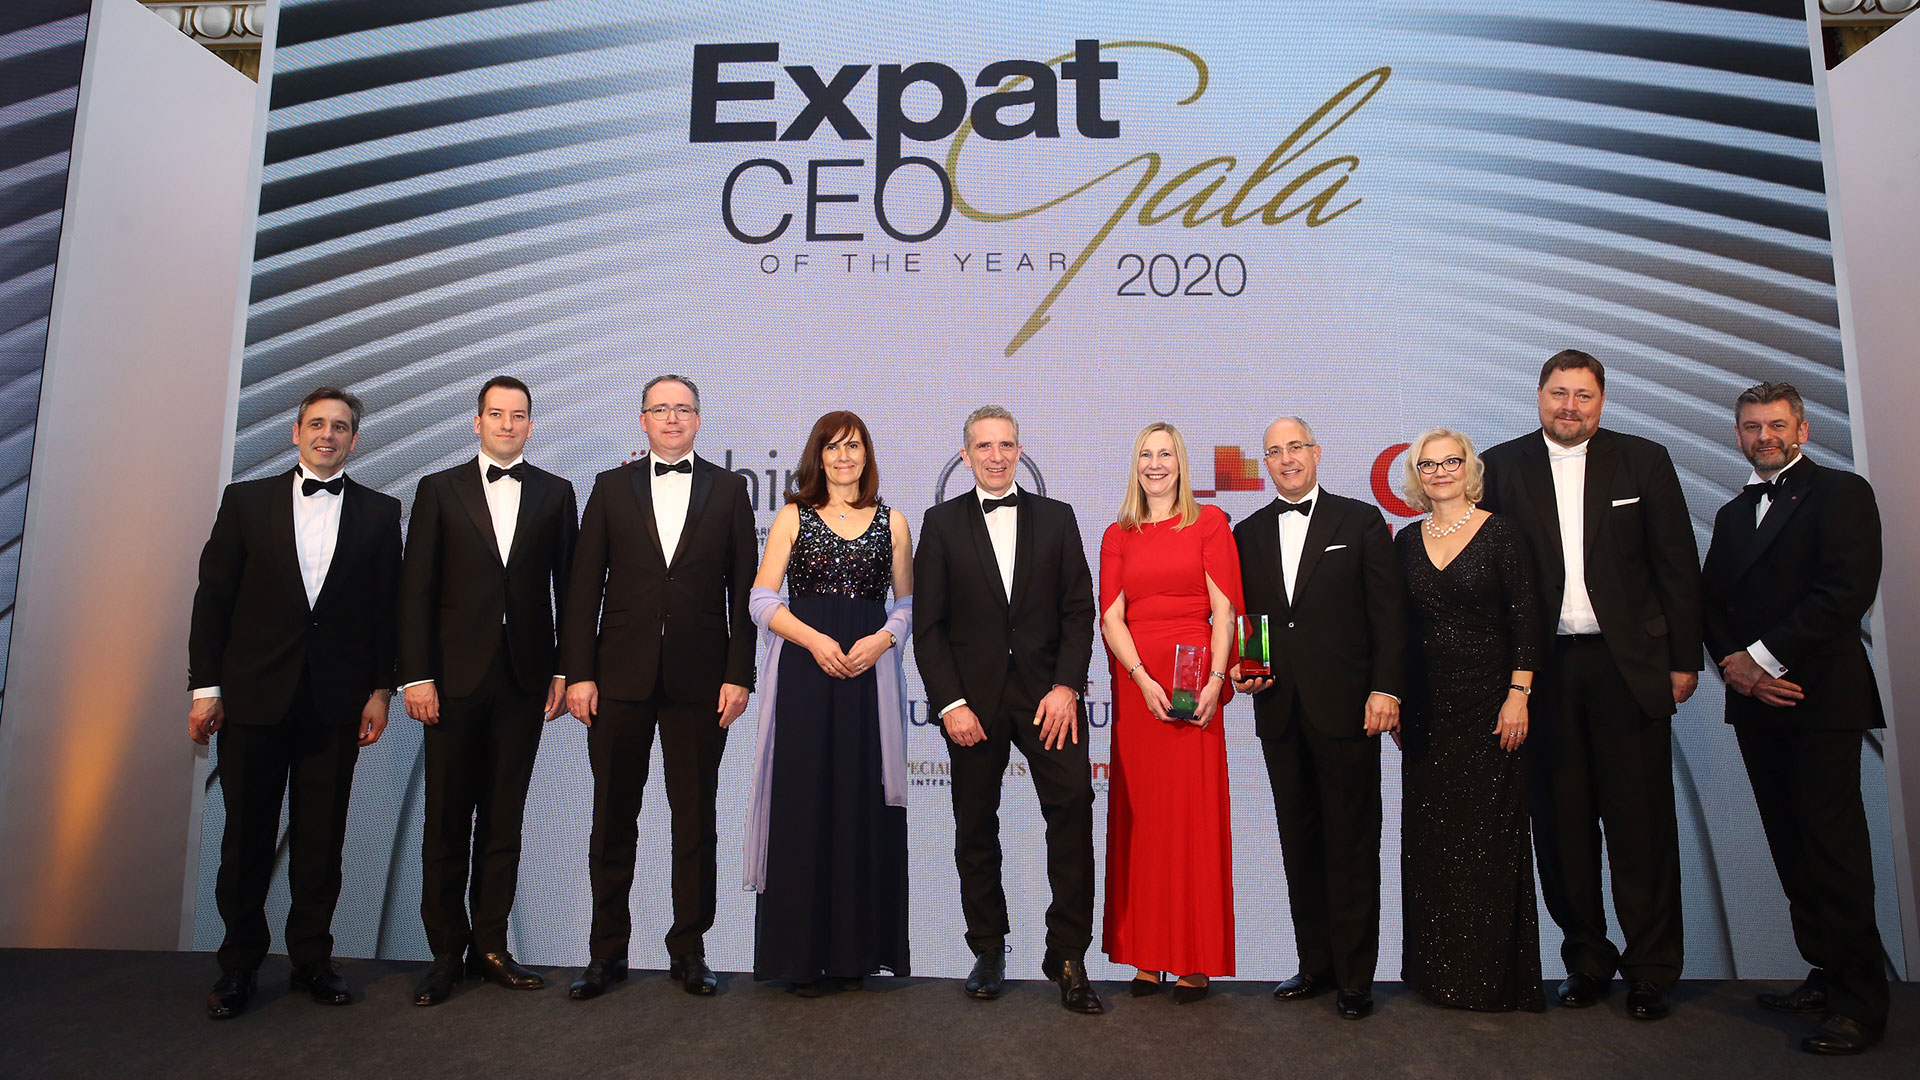 The Expat CEO of the Year prize was awarded to Ms Melanie Seymour